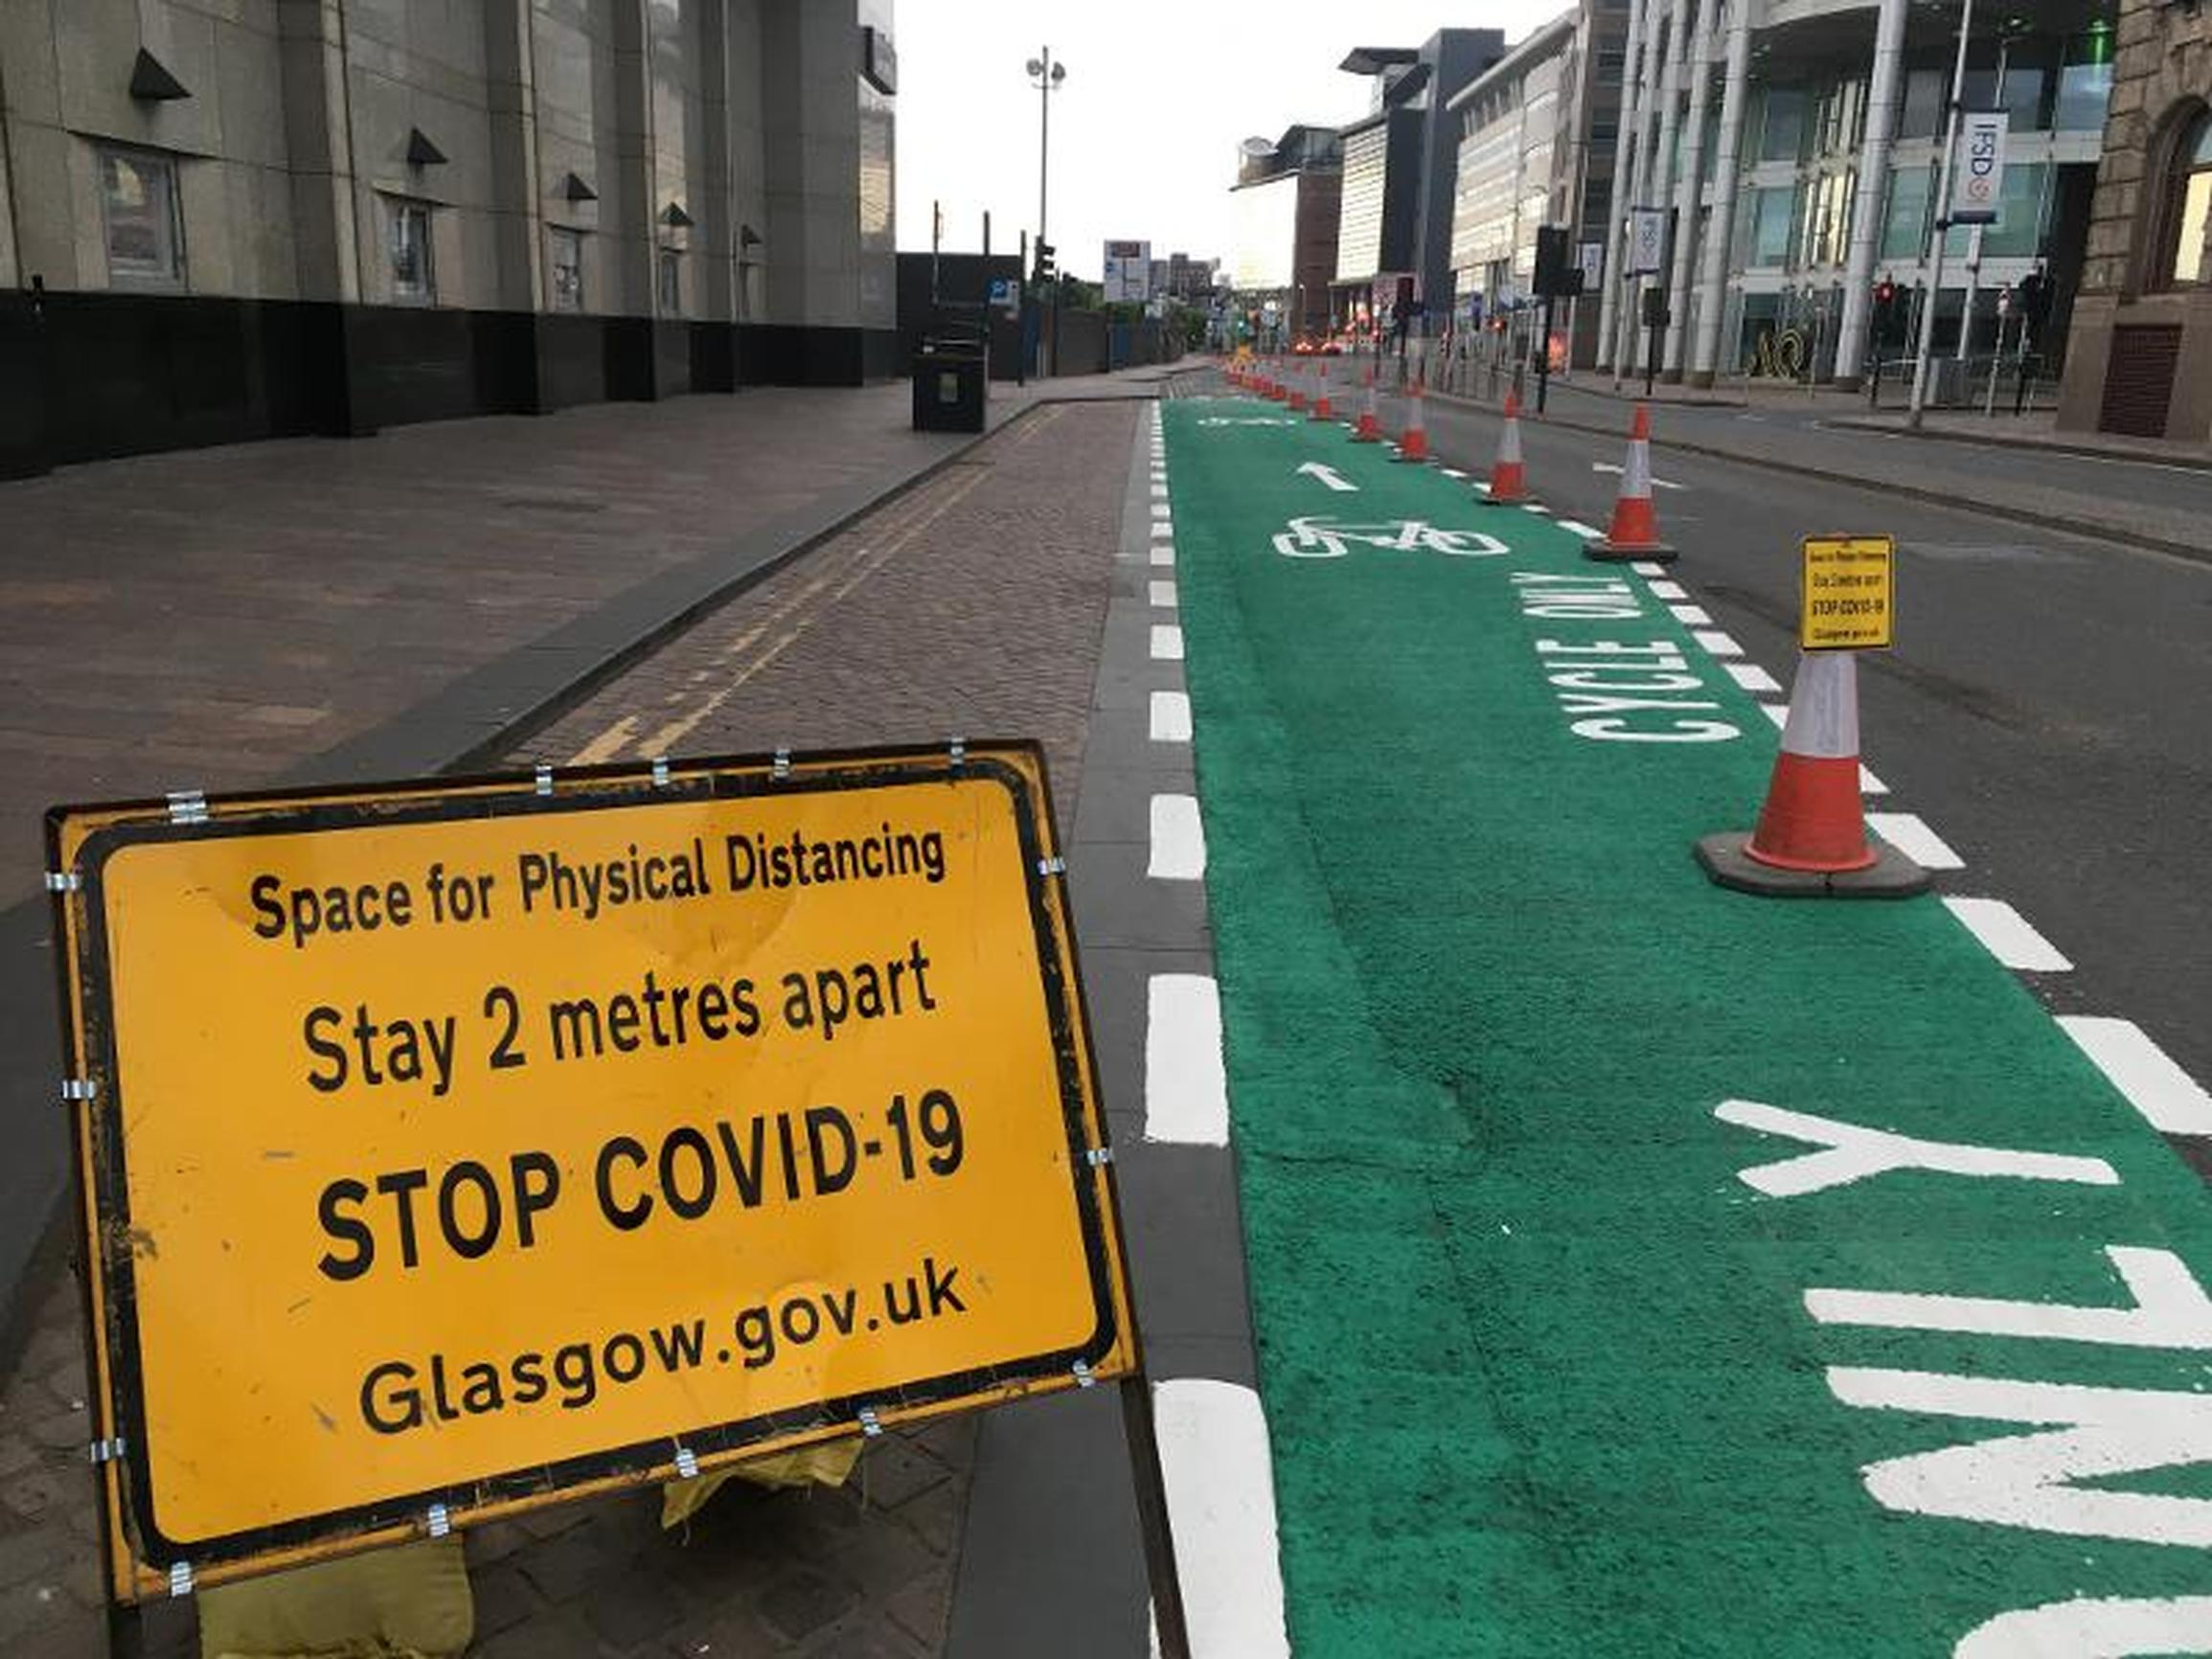 Glasgow completes emergency cycle lane